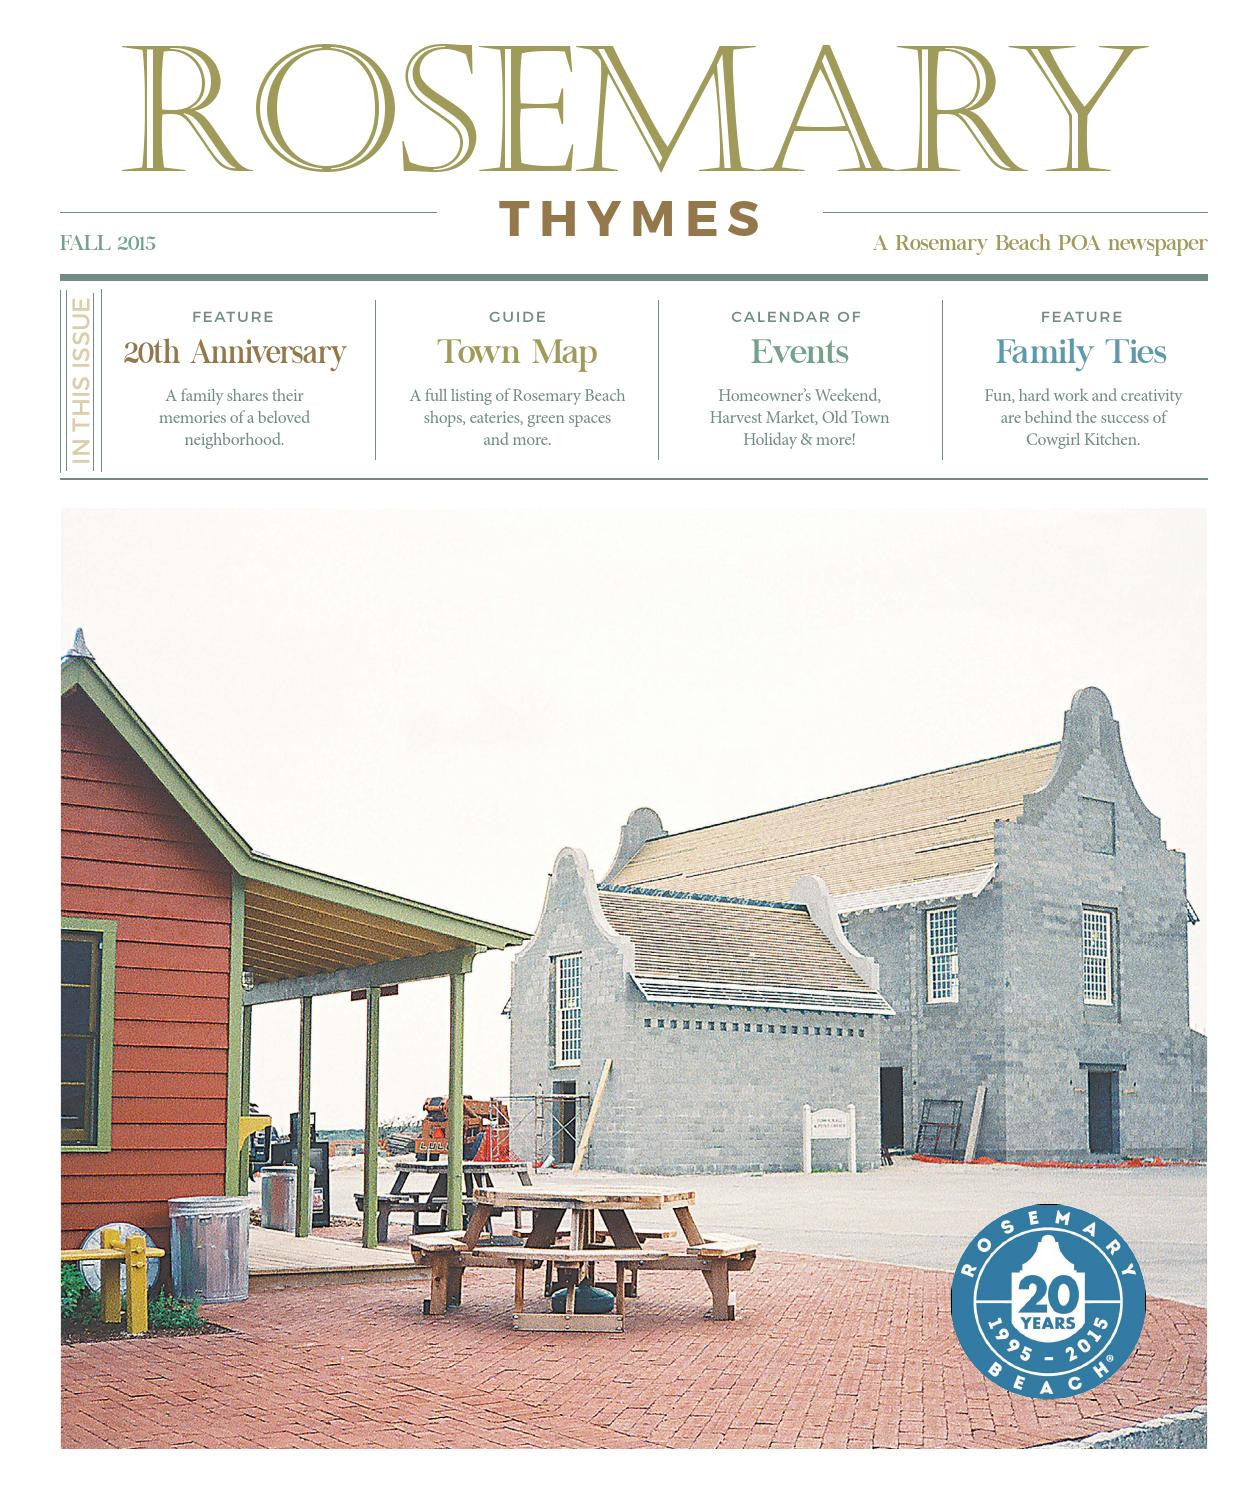 Rosemary Thymes Fall 2015 by Rosemary Thymes - issuu